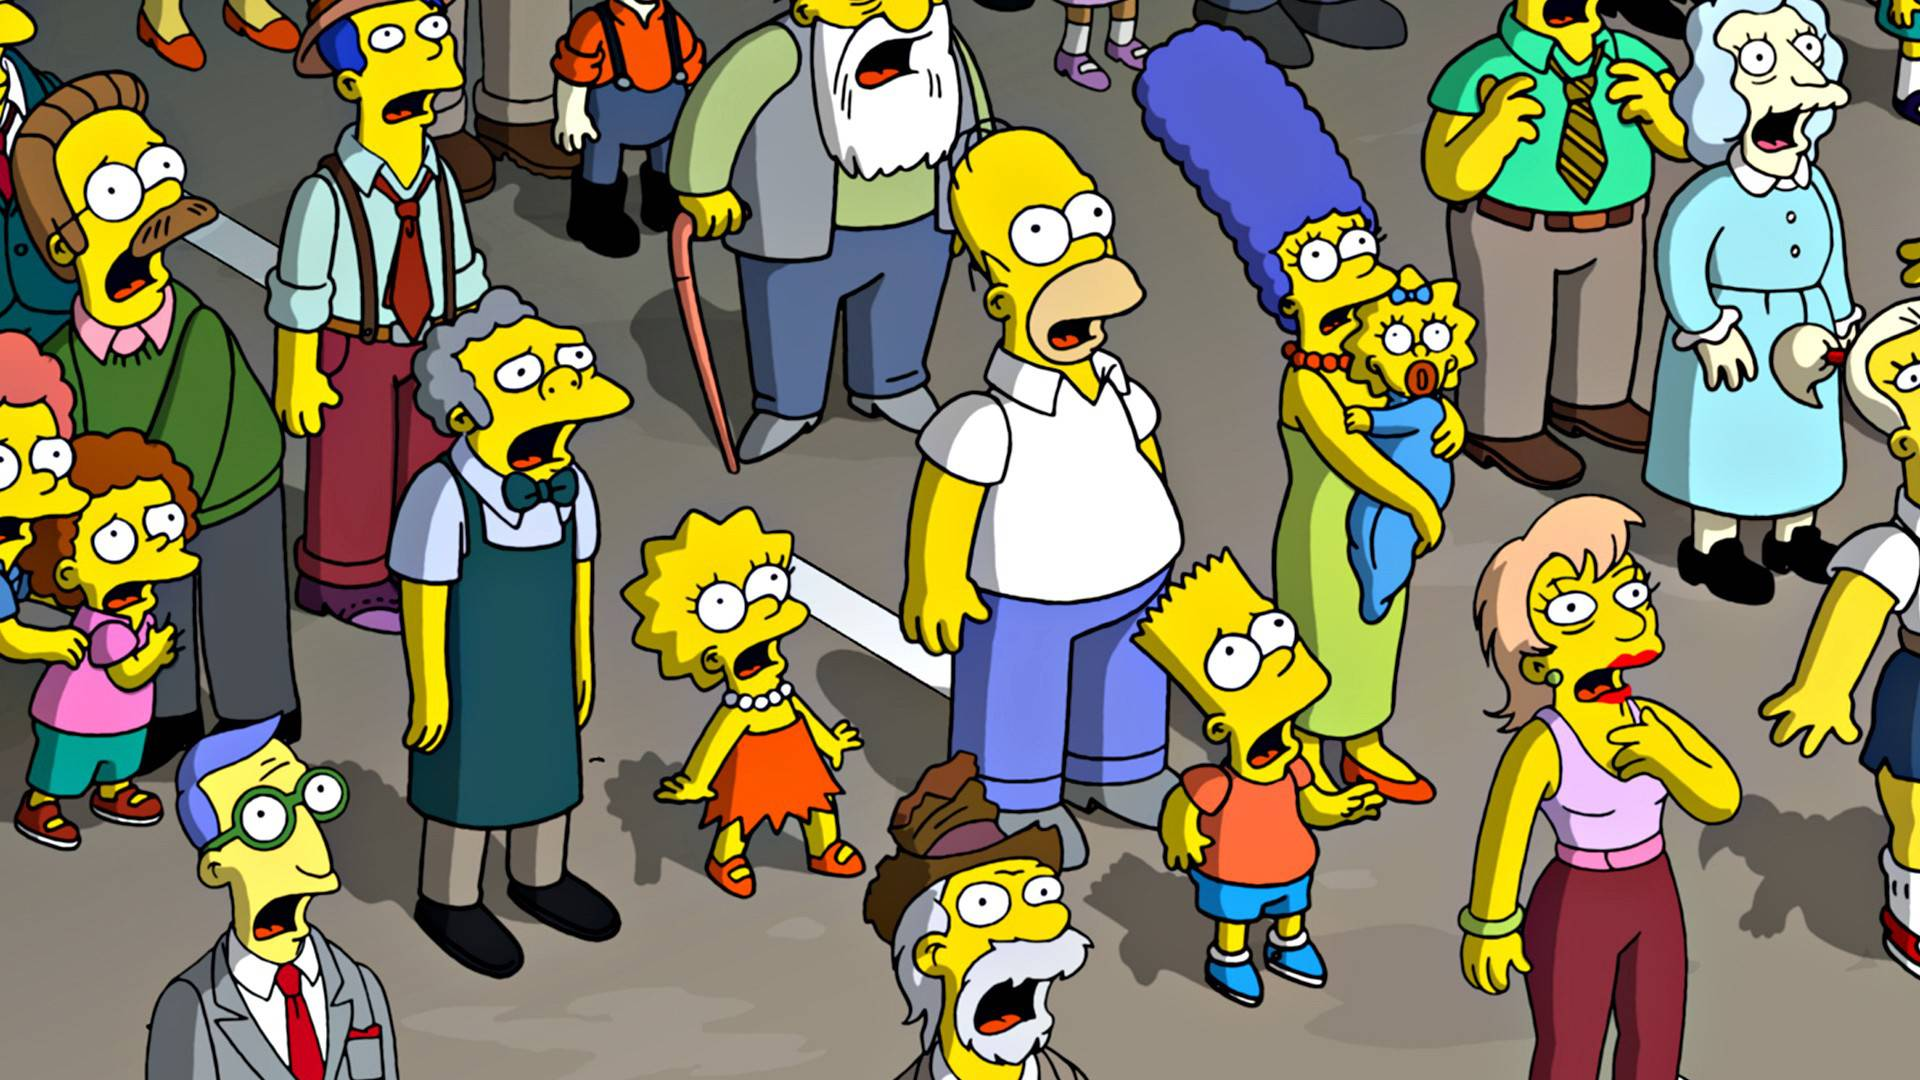 Simpsons Wallpapers HD | HD Wallpapers, Backgrounds, Images, Art ...